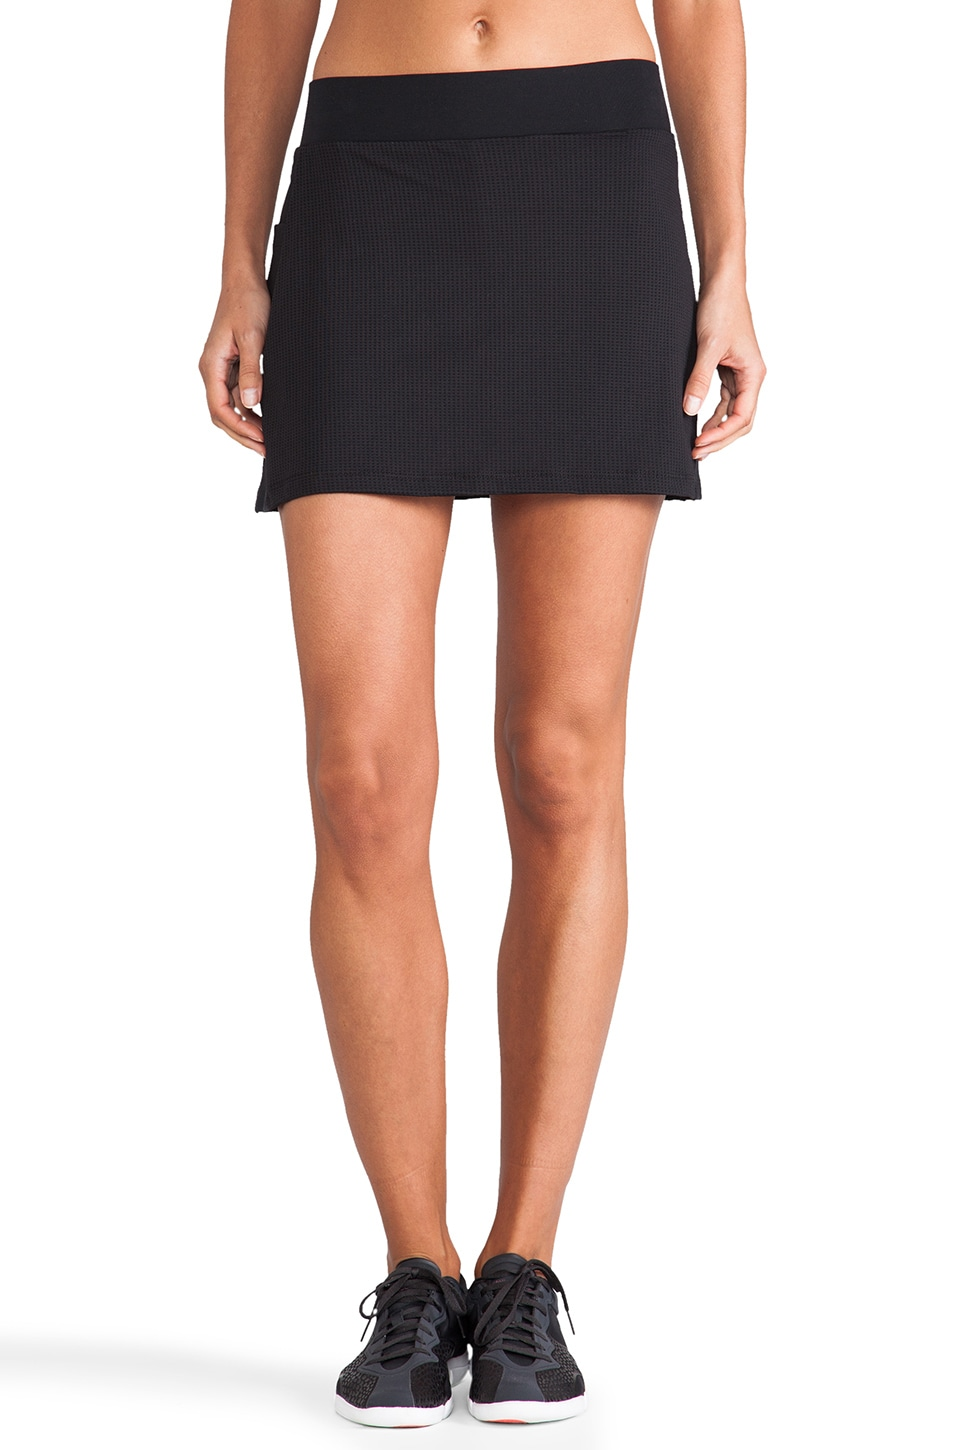 SOLOW Eclon Basics Eclon Skort with Mesh in Black